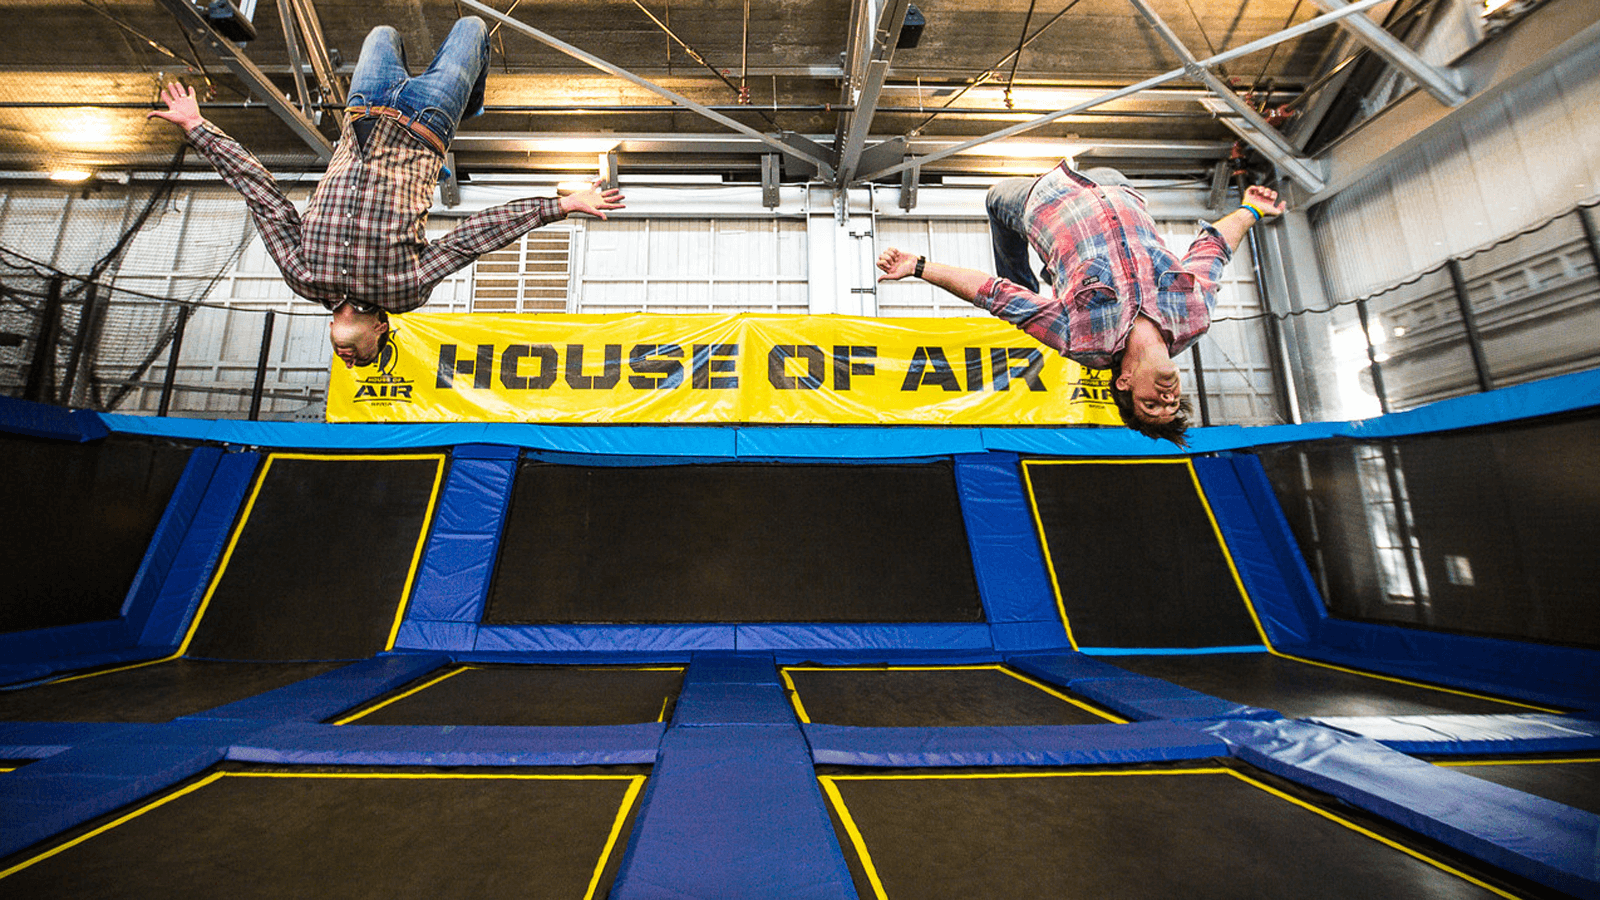 house of air trampoline park birthday parties indoor recreation. Black Bedroom Furniture Sets. Home Design Ideas